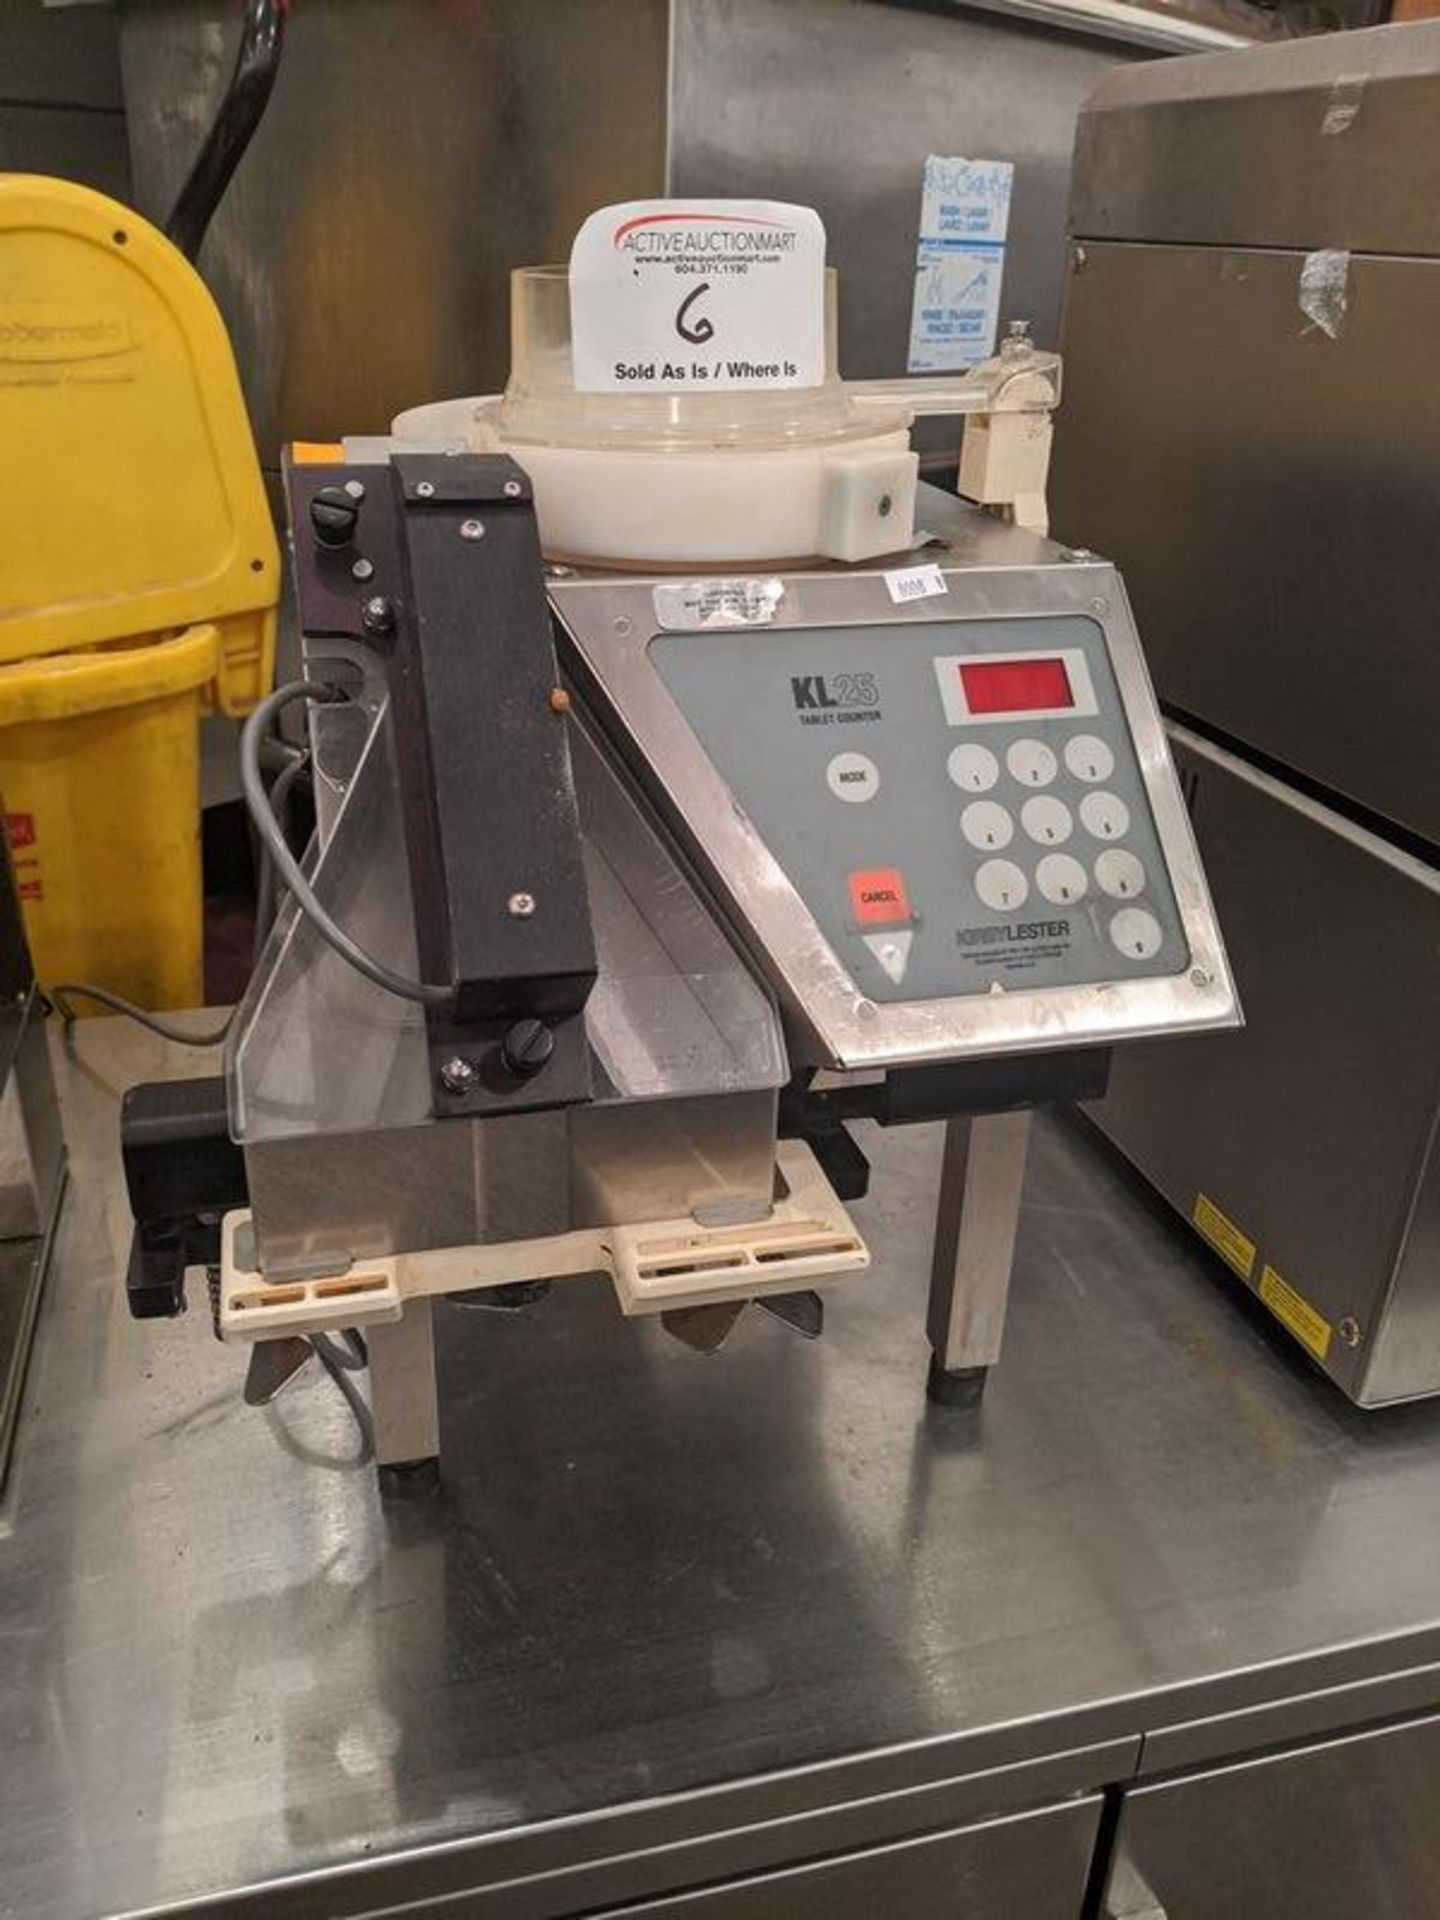 Lot 6 - Kirby Lester KL25 Tablet Counter